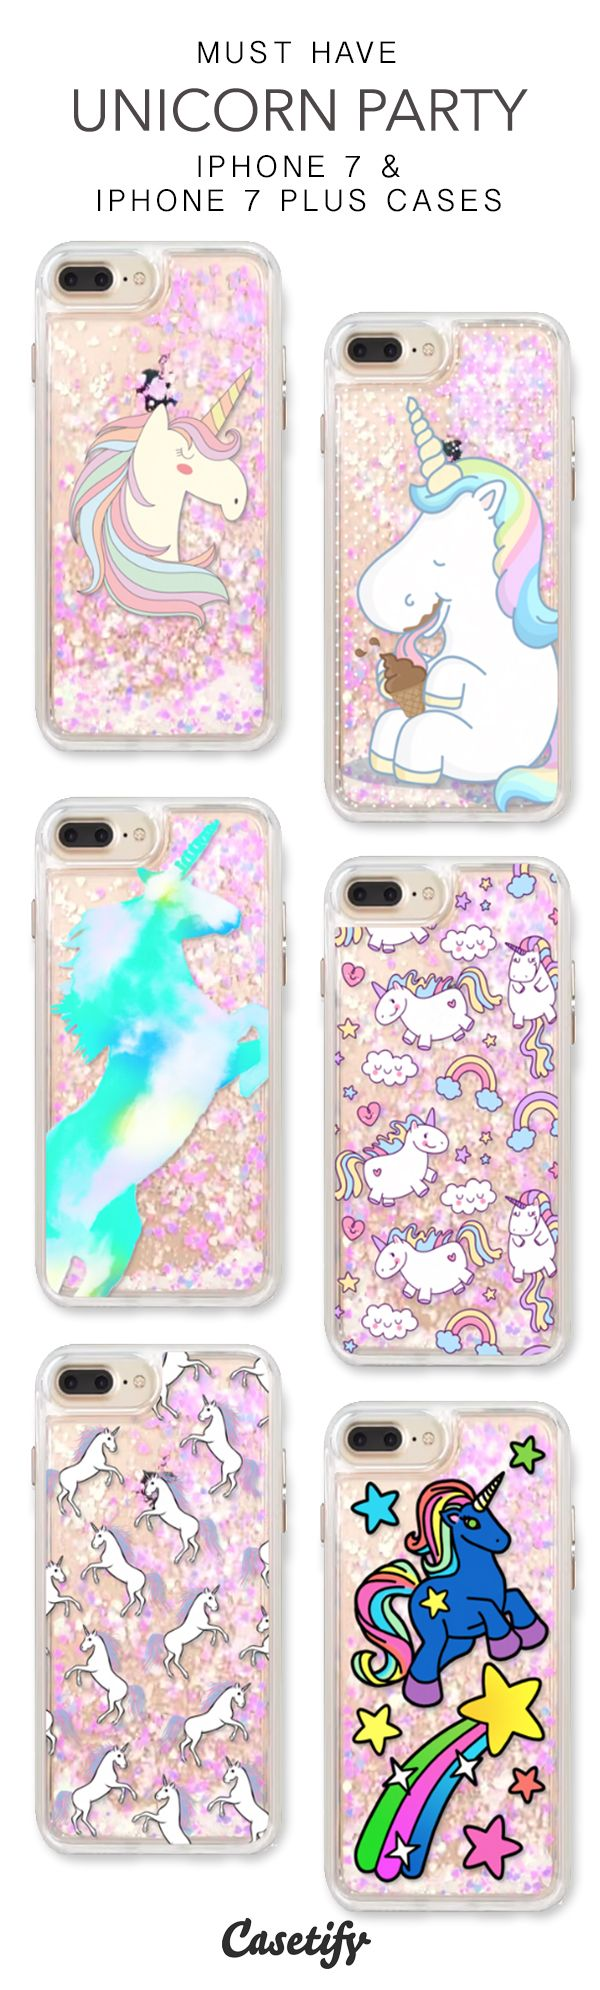 Must Have Unicorn Party iPhone 7 Cases & iPhone 7 Plus Cases. More protective liquid glitter iPhone case here > https://www.casetify.com/en_US/collections/iphone-7-glitter-cases#/?vc=USN8VMeama